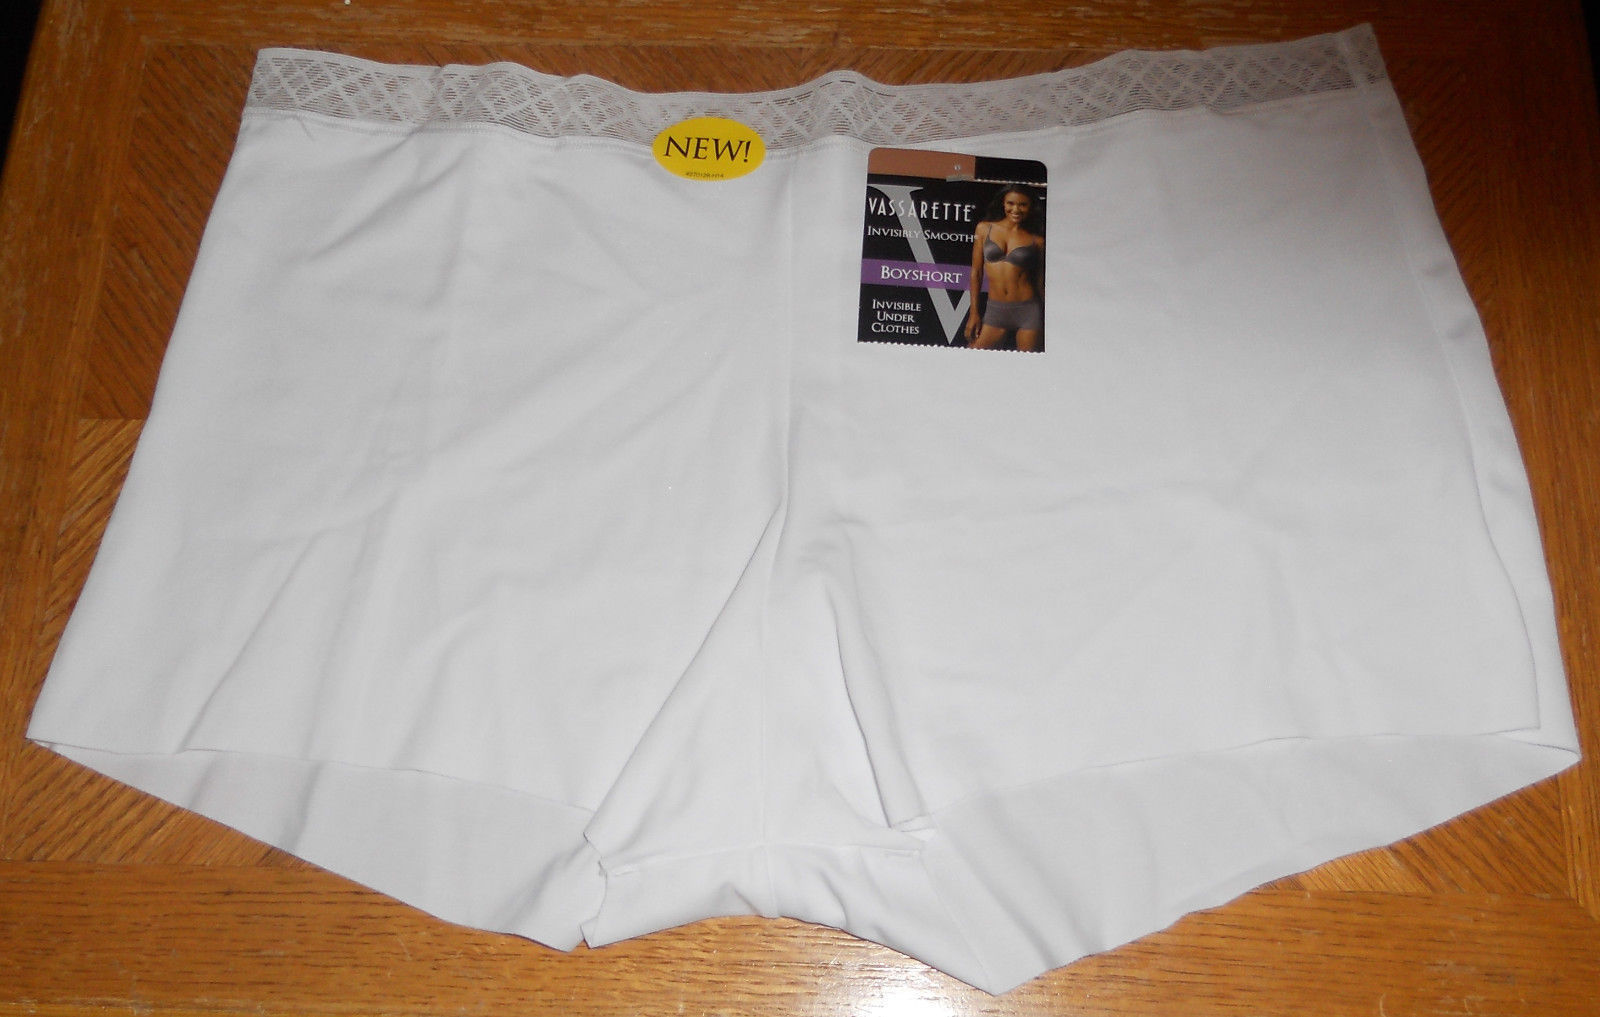 b471506ba92 Vassarette Boyshorts Invisibly Smooth and 50 similar items